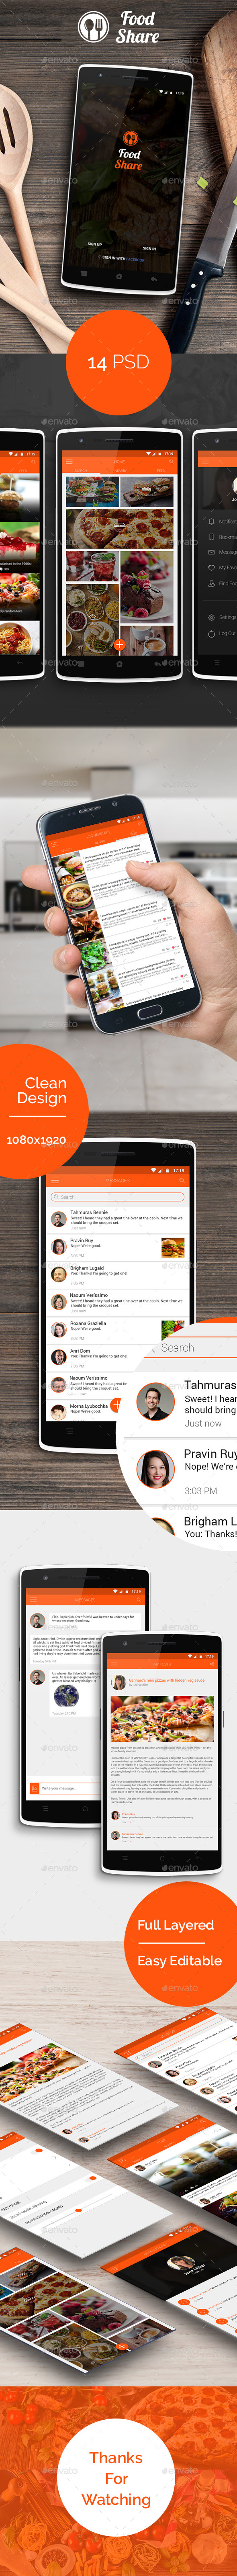 Food Share Food App Template UI